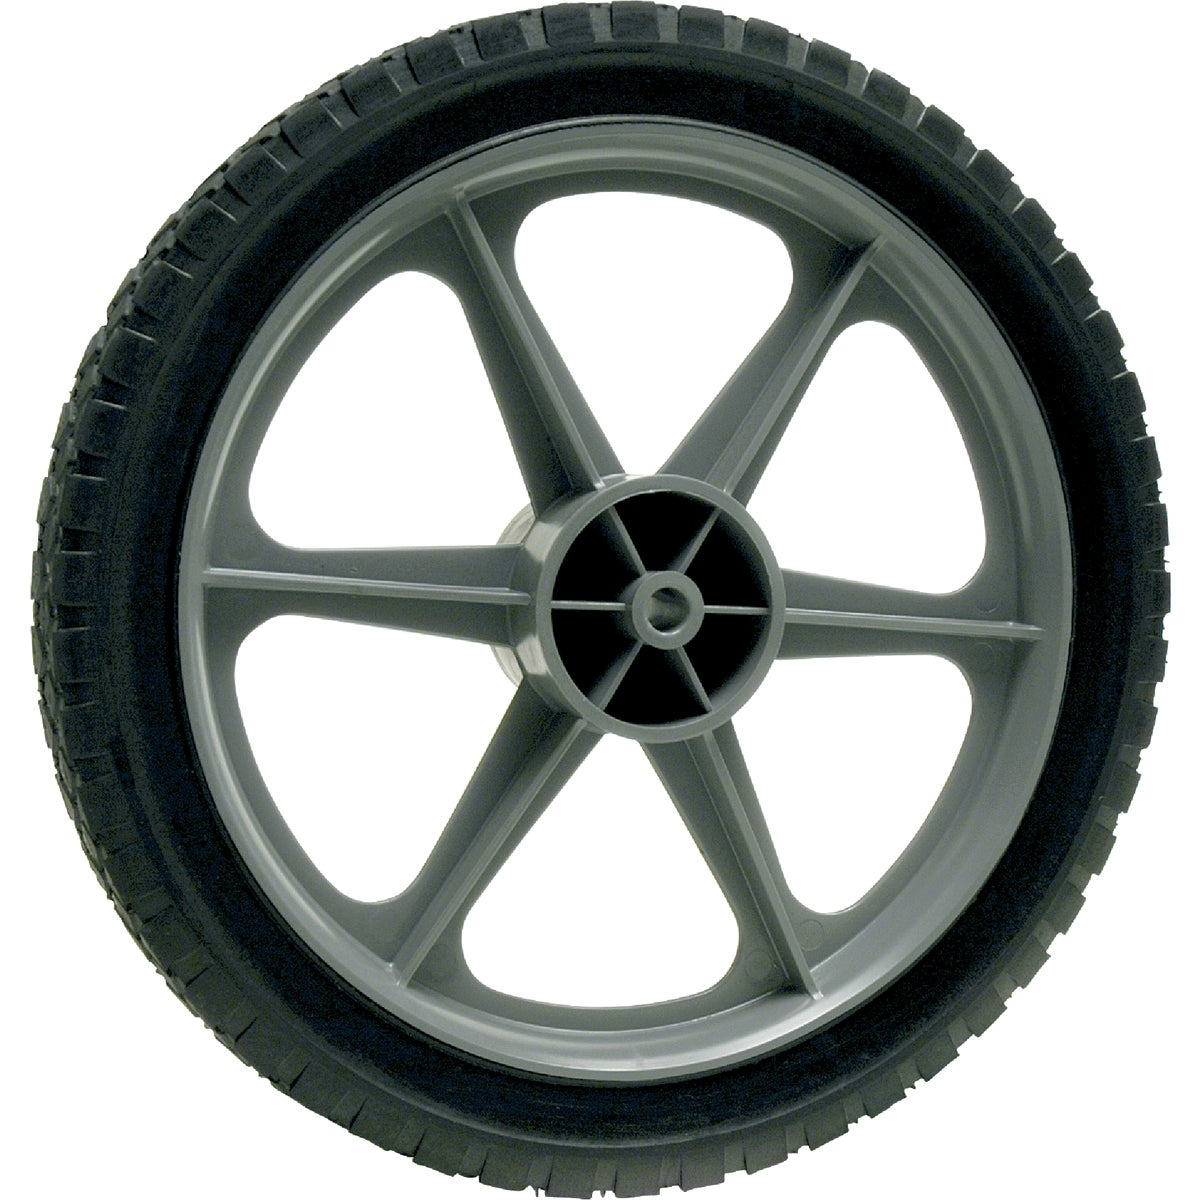 14X1.75 HIGH SPOKE WHEEL - 1475-P by Arnold Corp